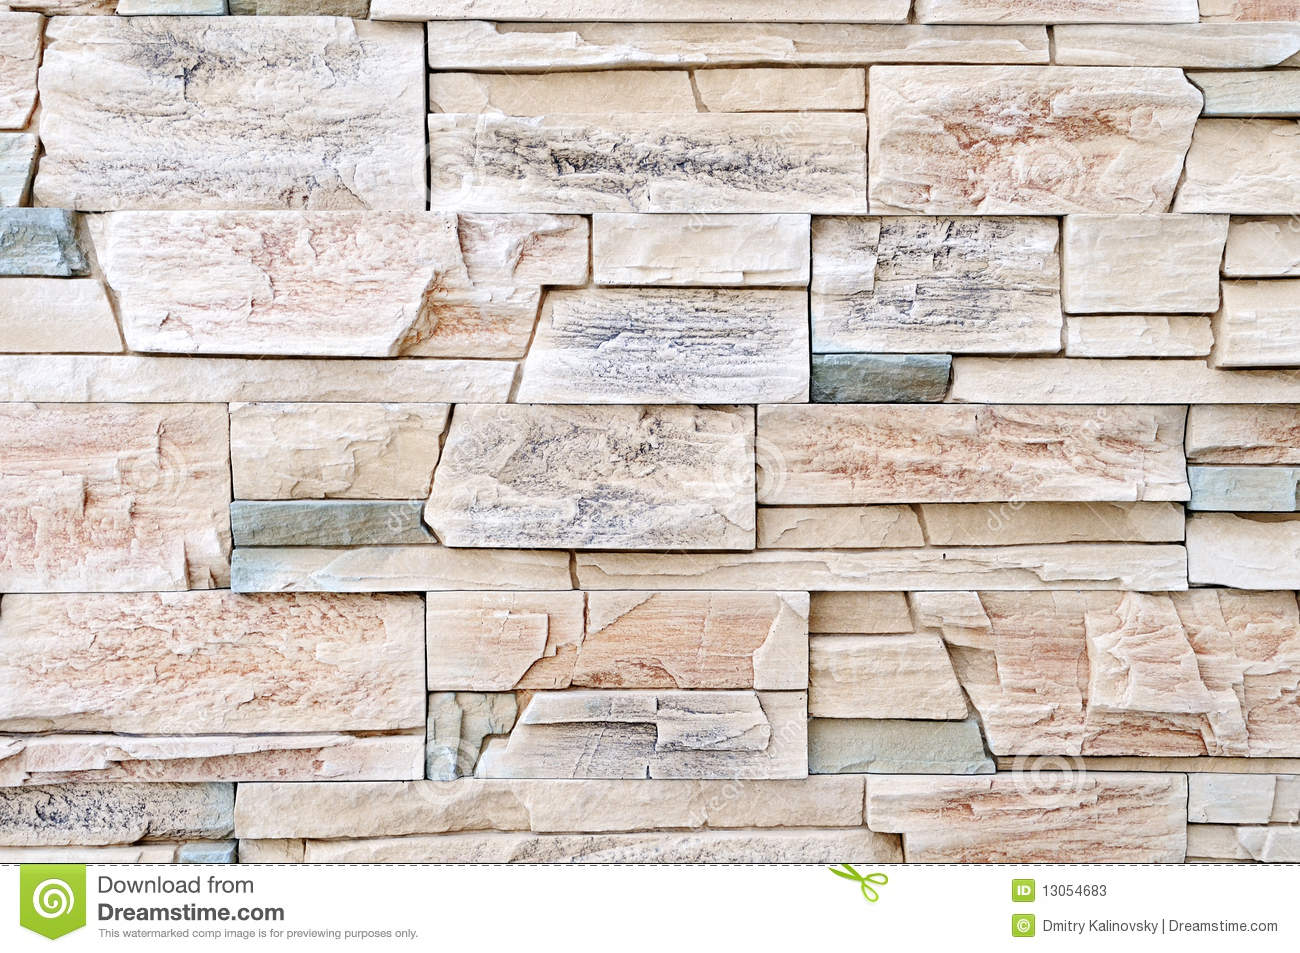 Brick stone wall material stock image image of natural for External wall materials